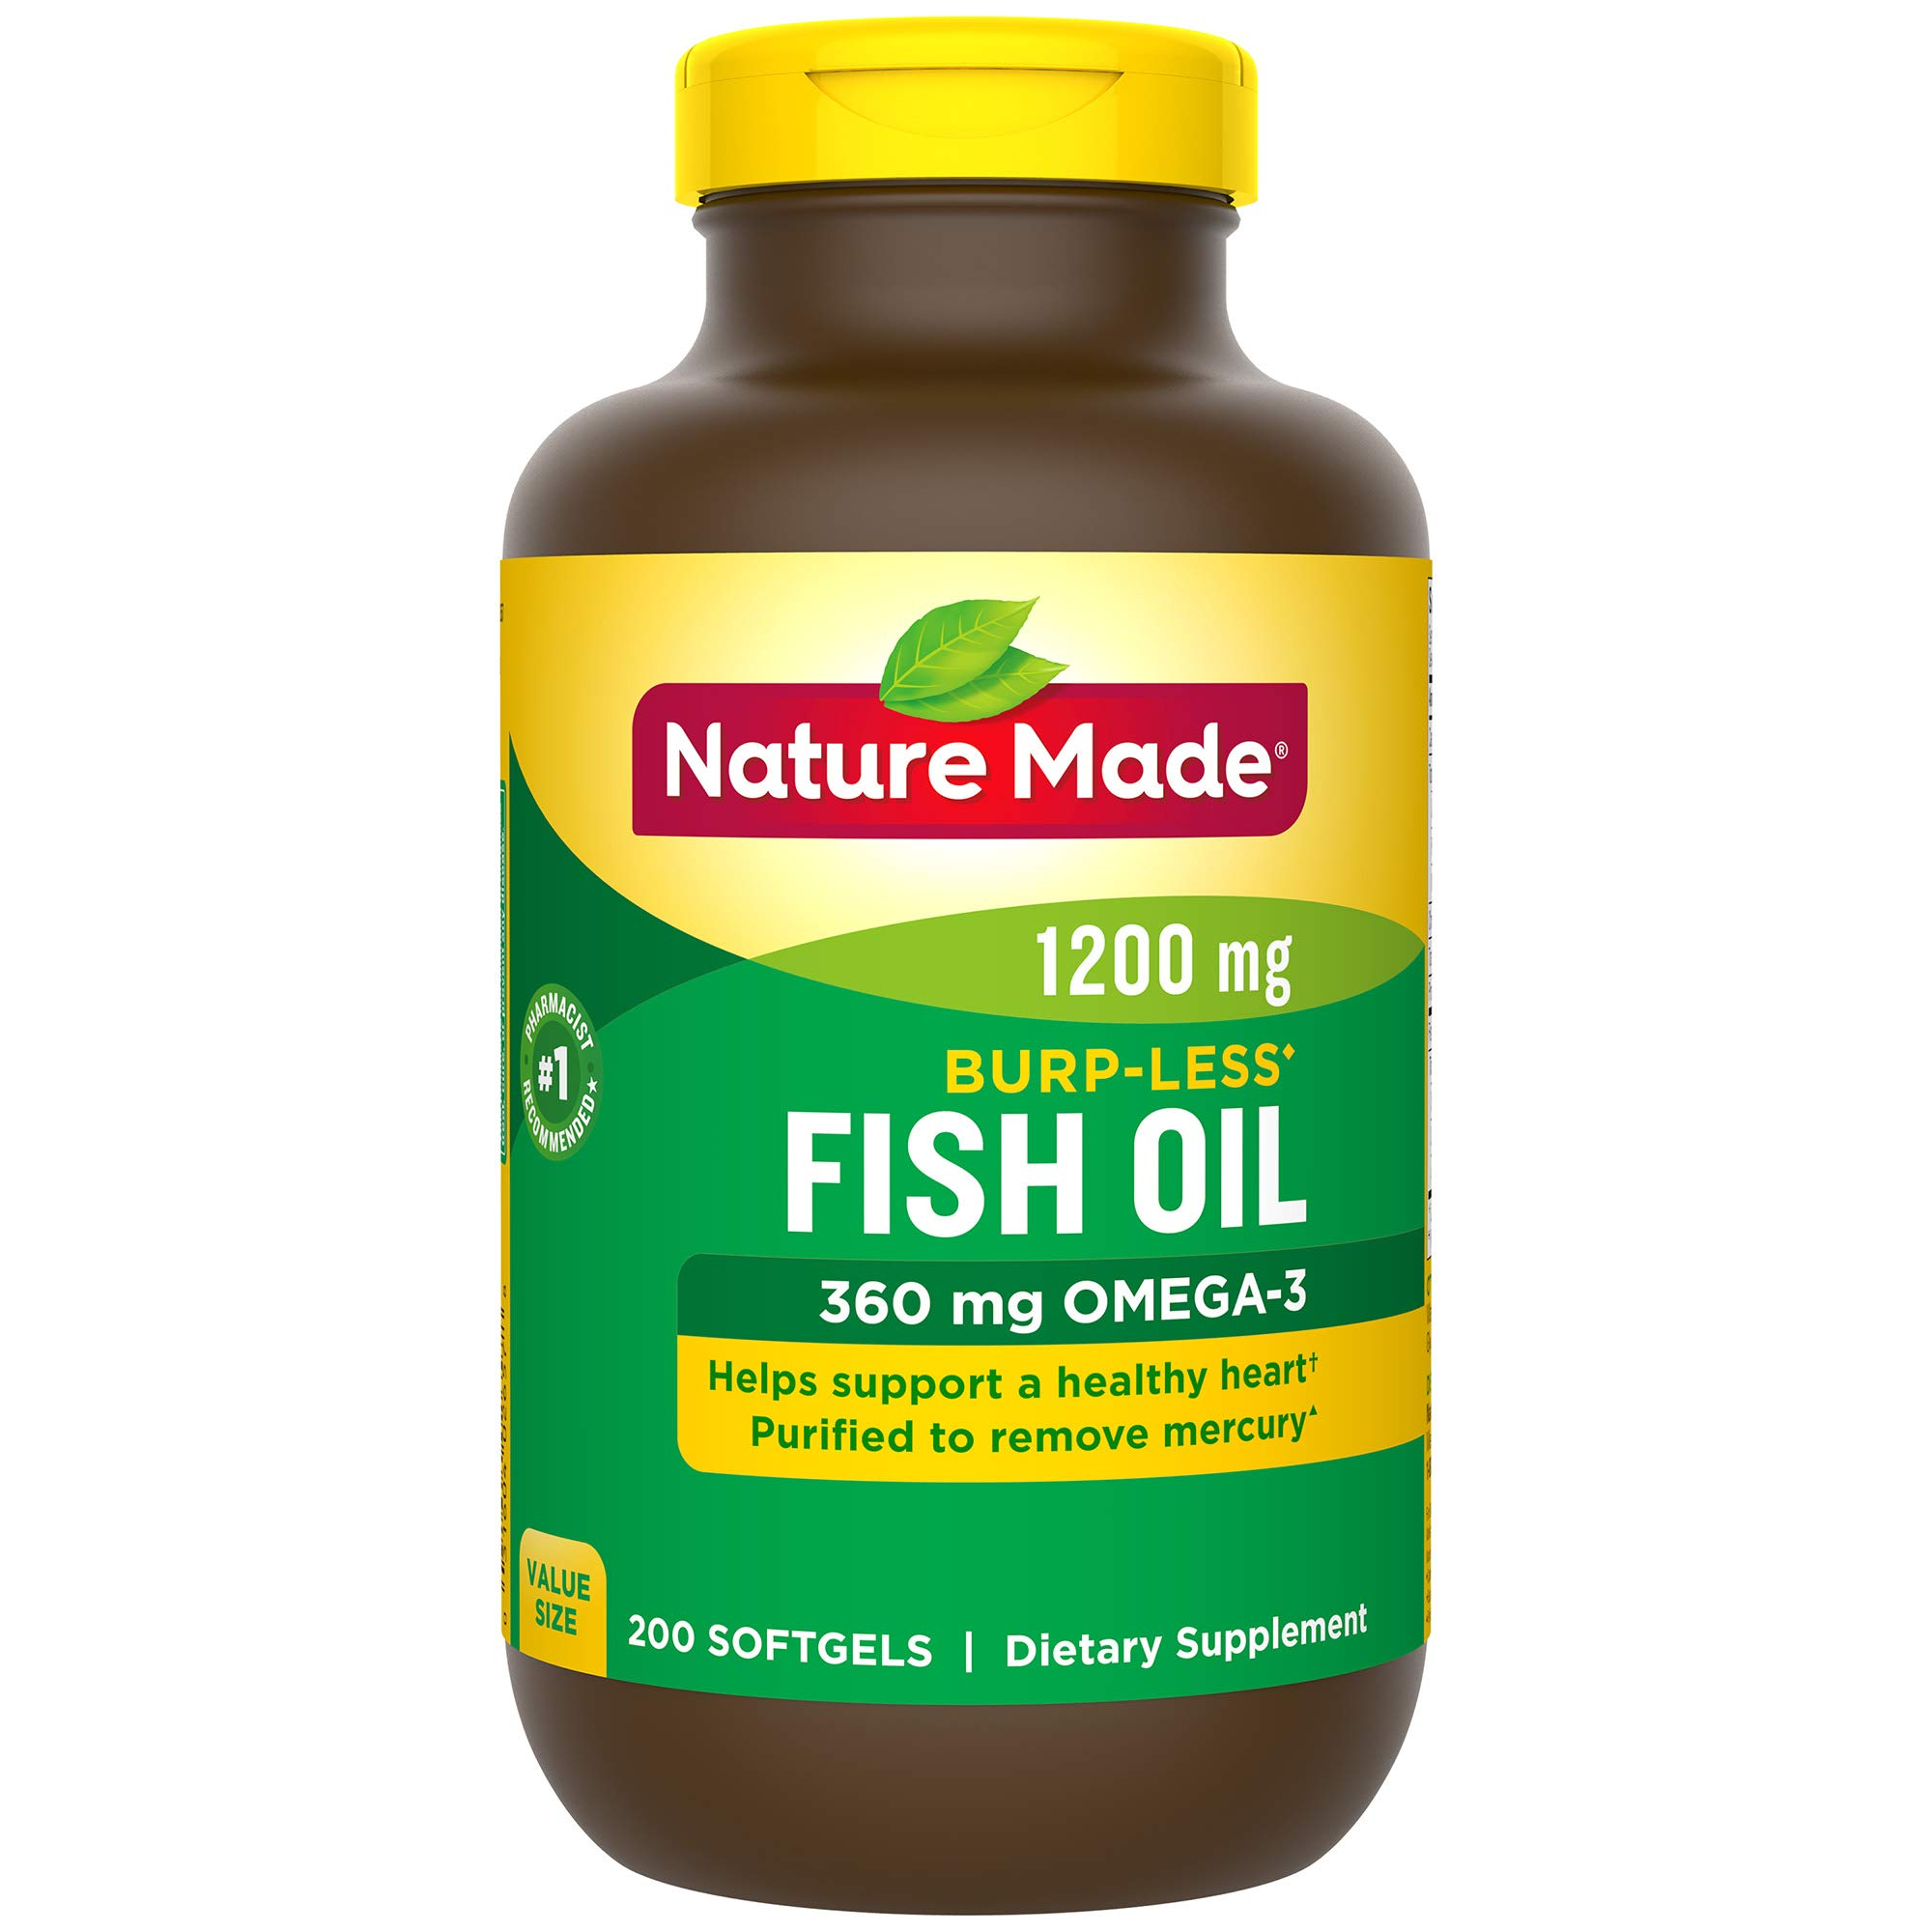 Nature Made Burp-Less Fish Oil 1,200 mg Softgels, 200 Count for Heart Health† (Packaging May Vary)